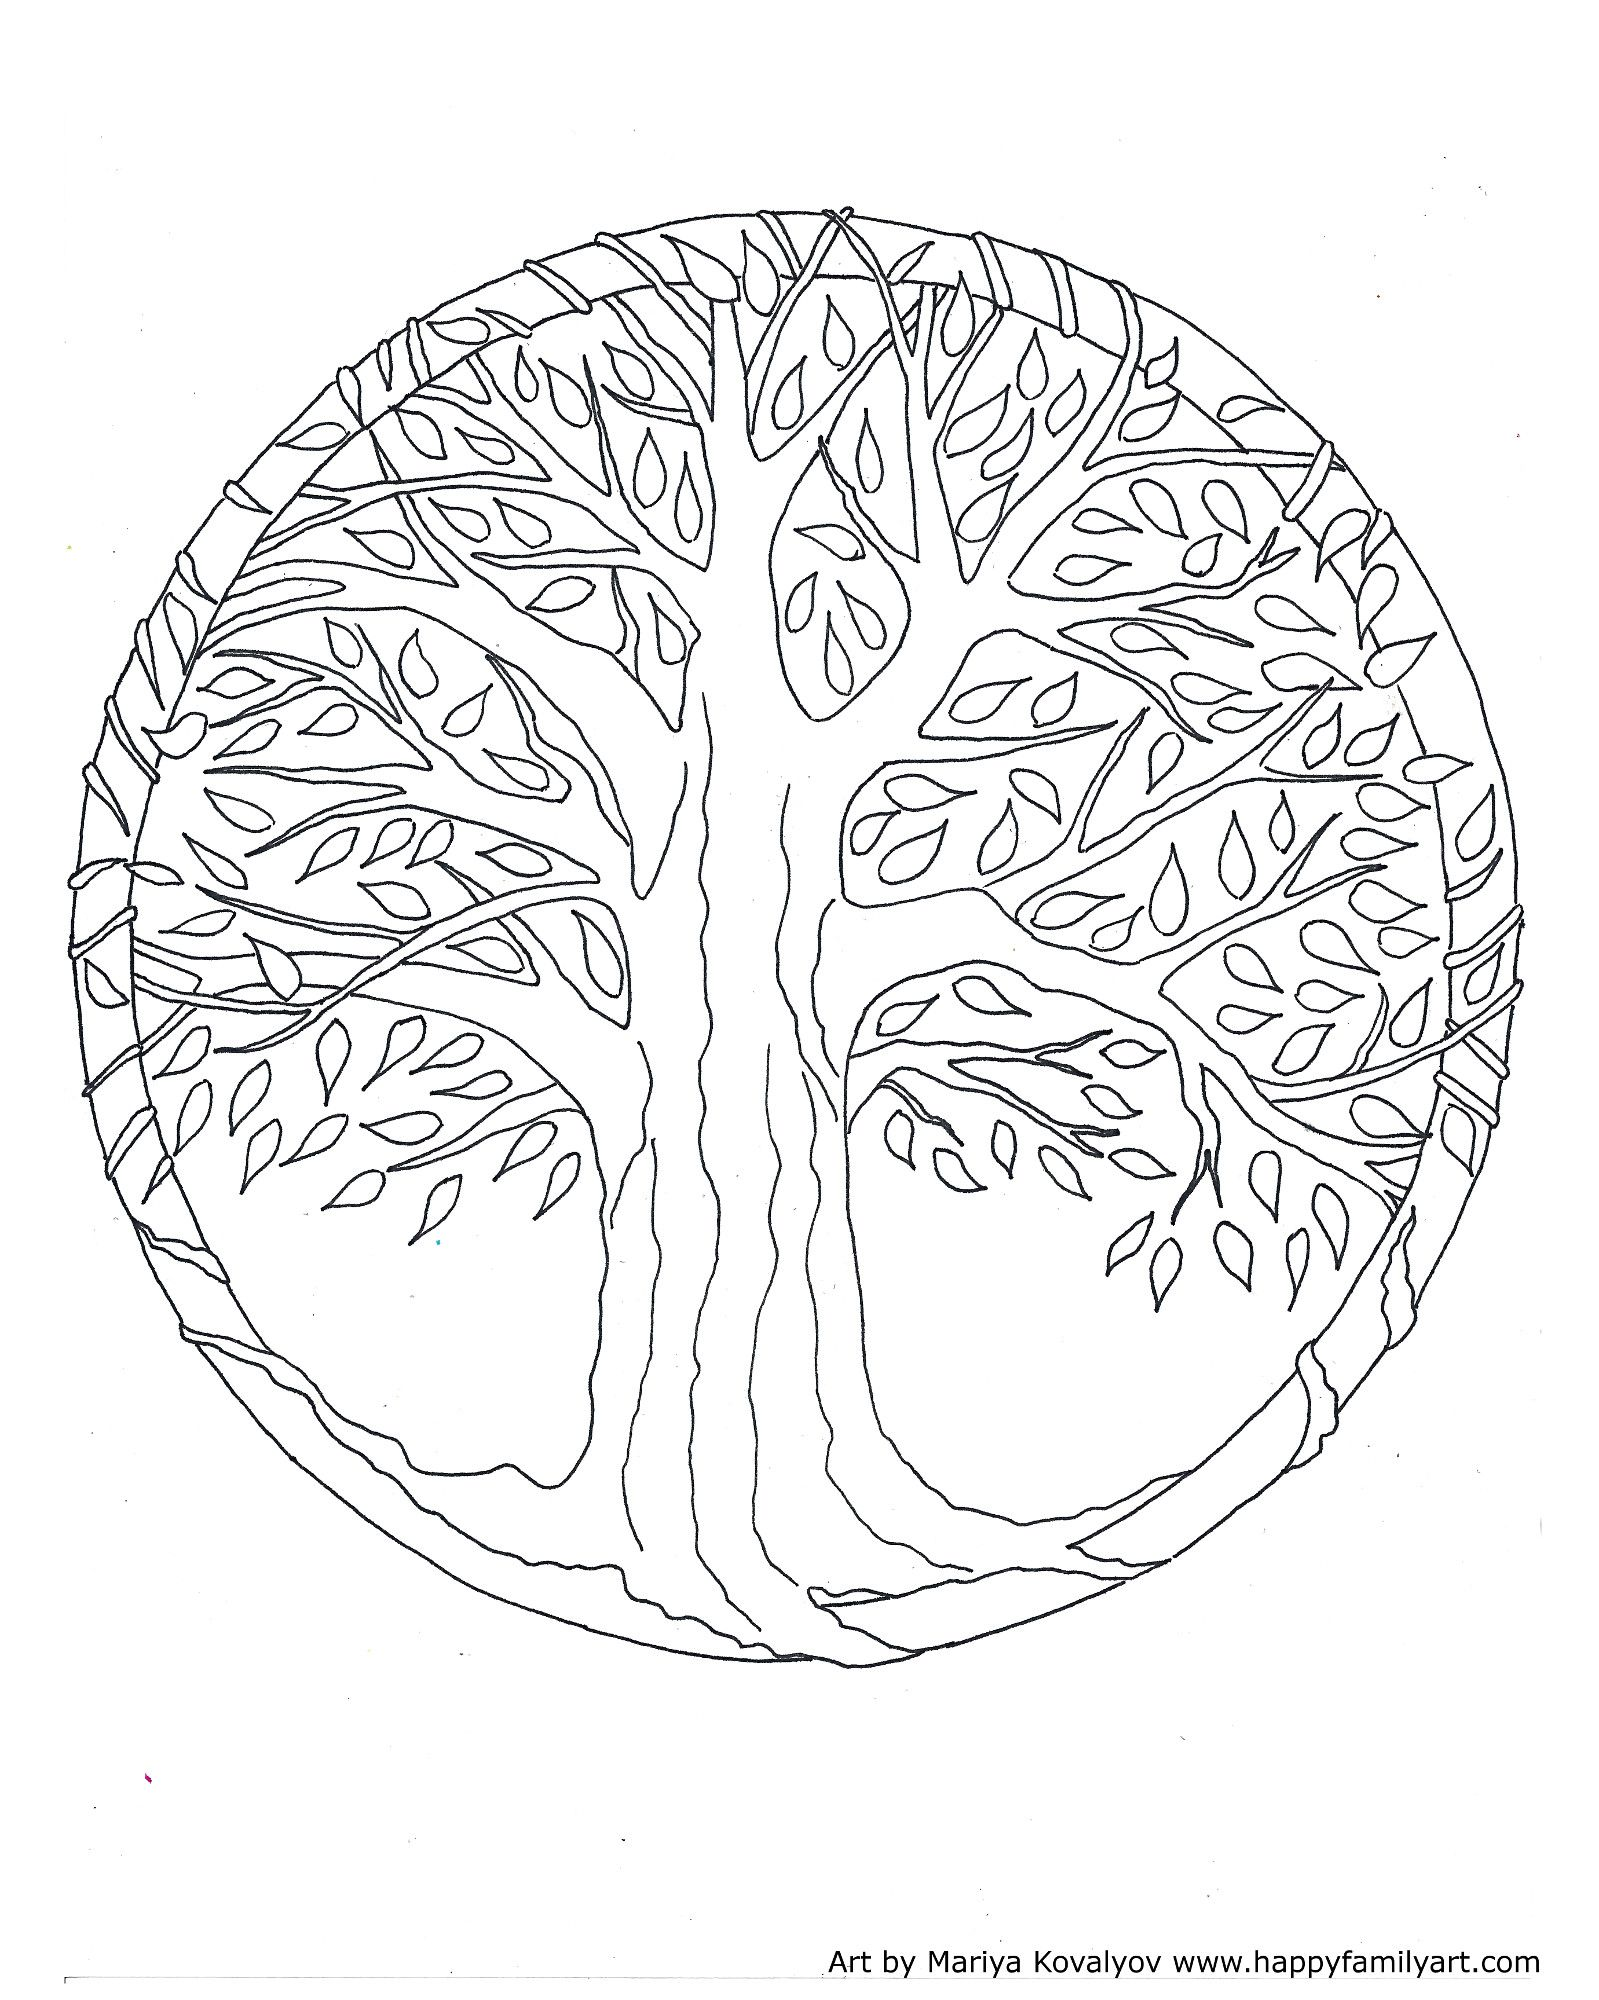 tree of life coloring pages original and fun coloring pages | Adult Coloring Books | Coloring  tree of life coloring pages